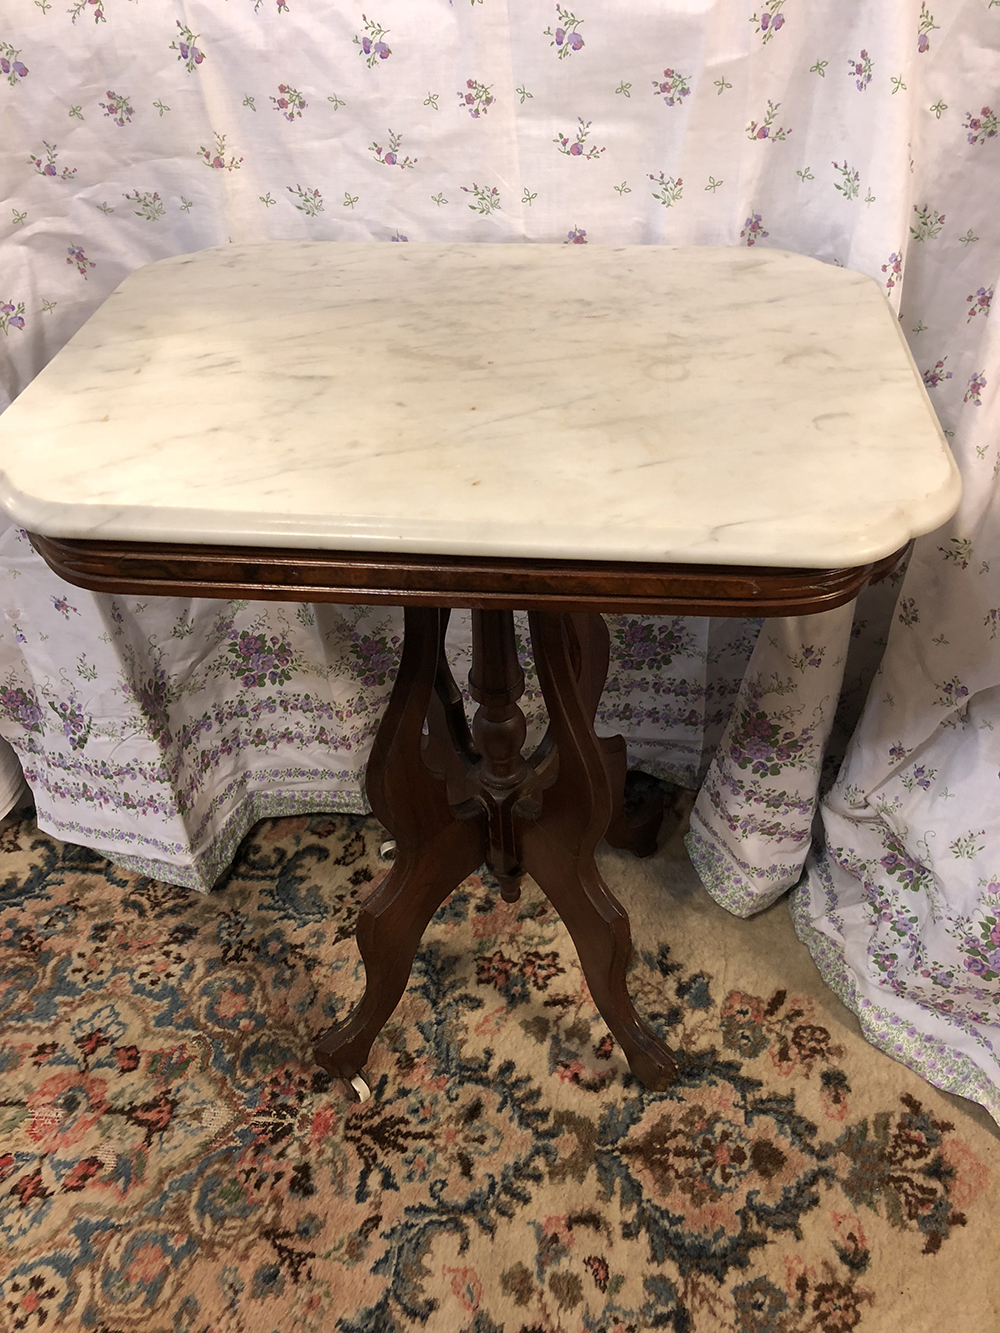 Lot 52: Victorian Marble Top Table